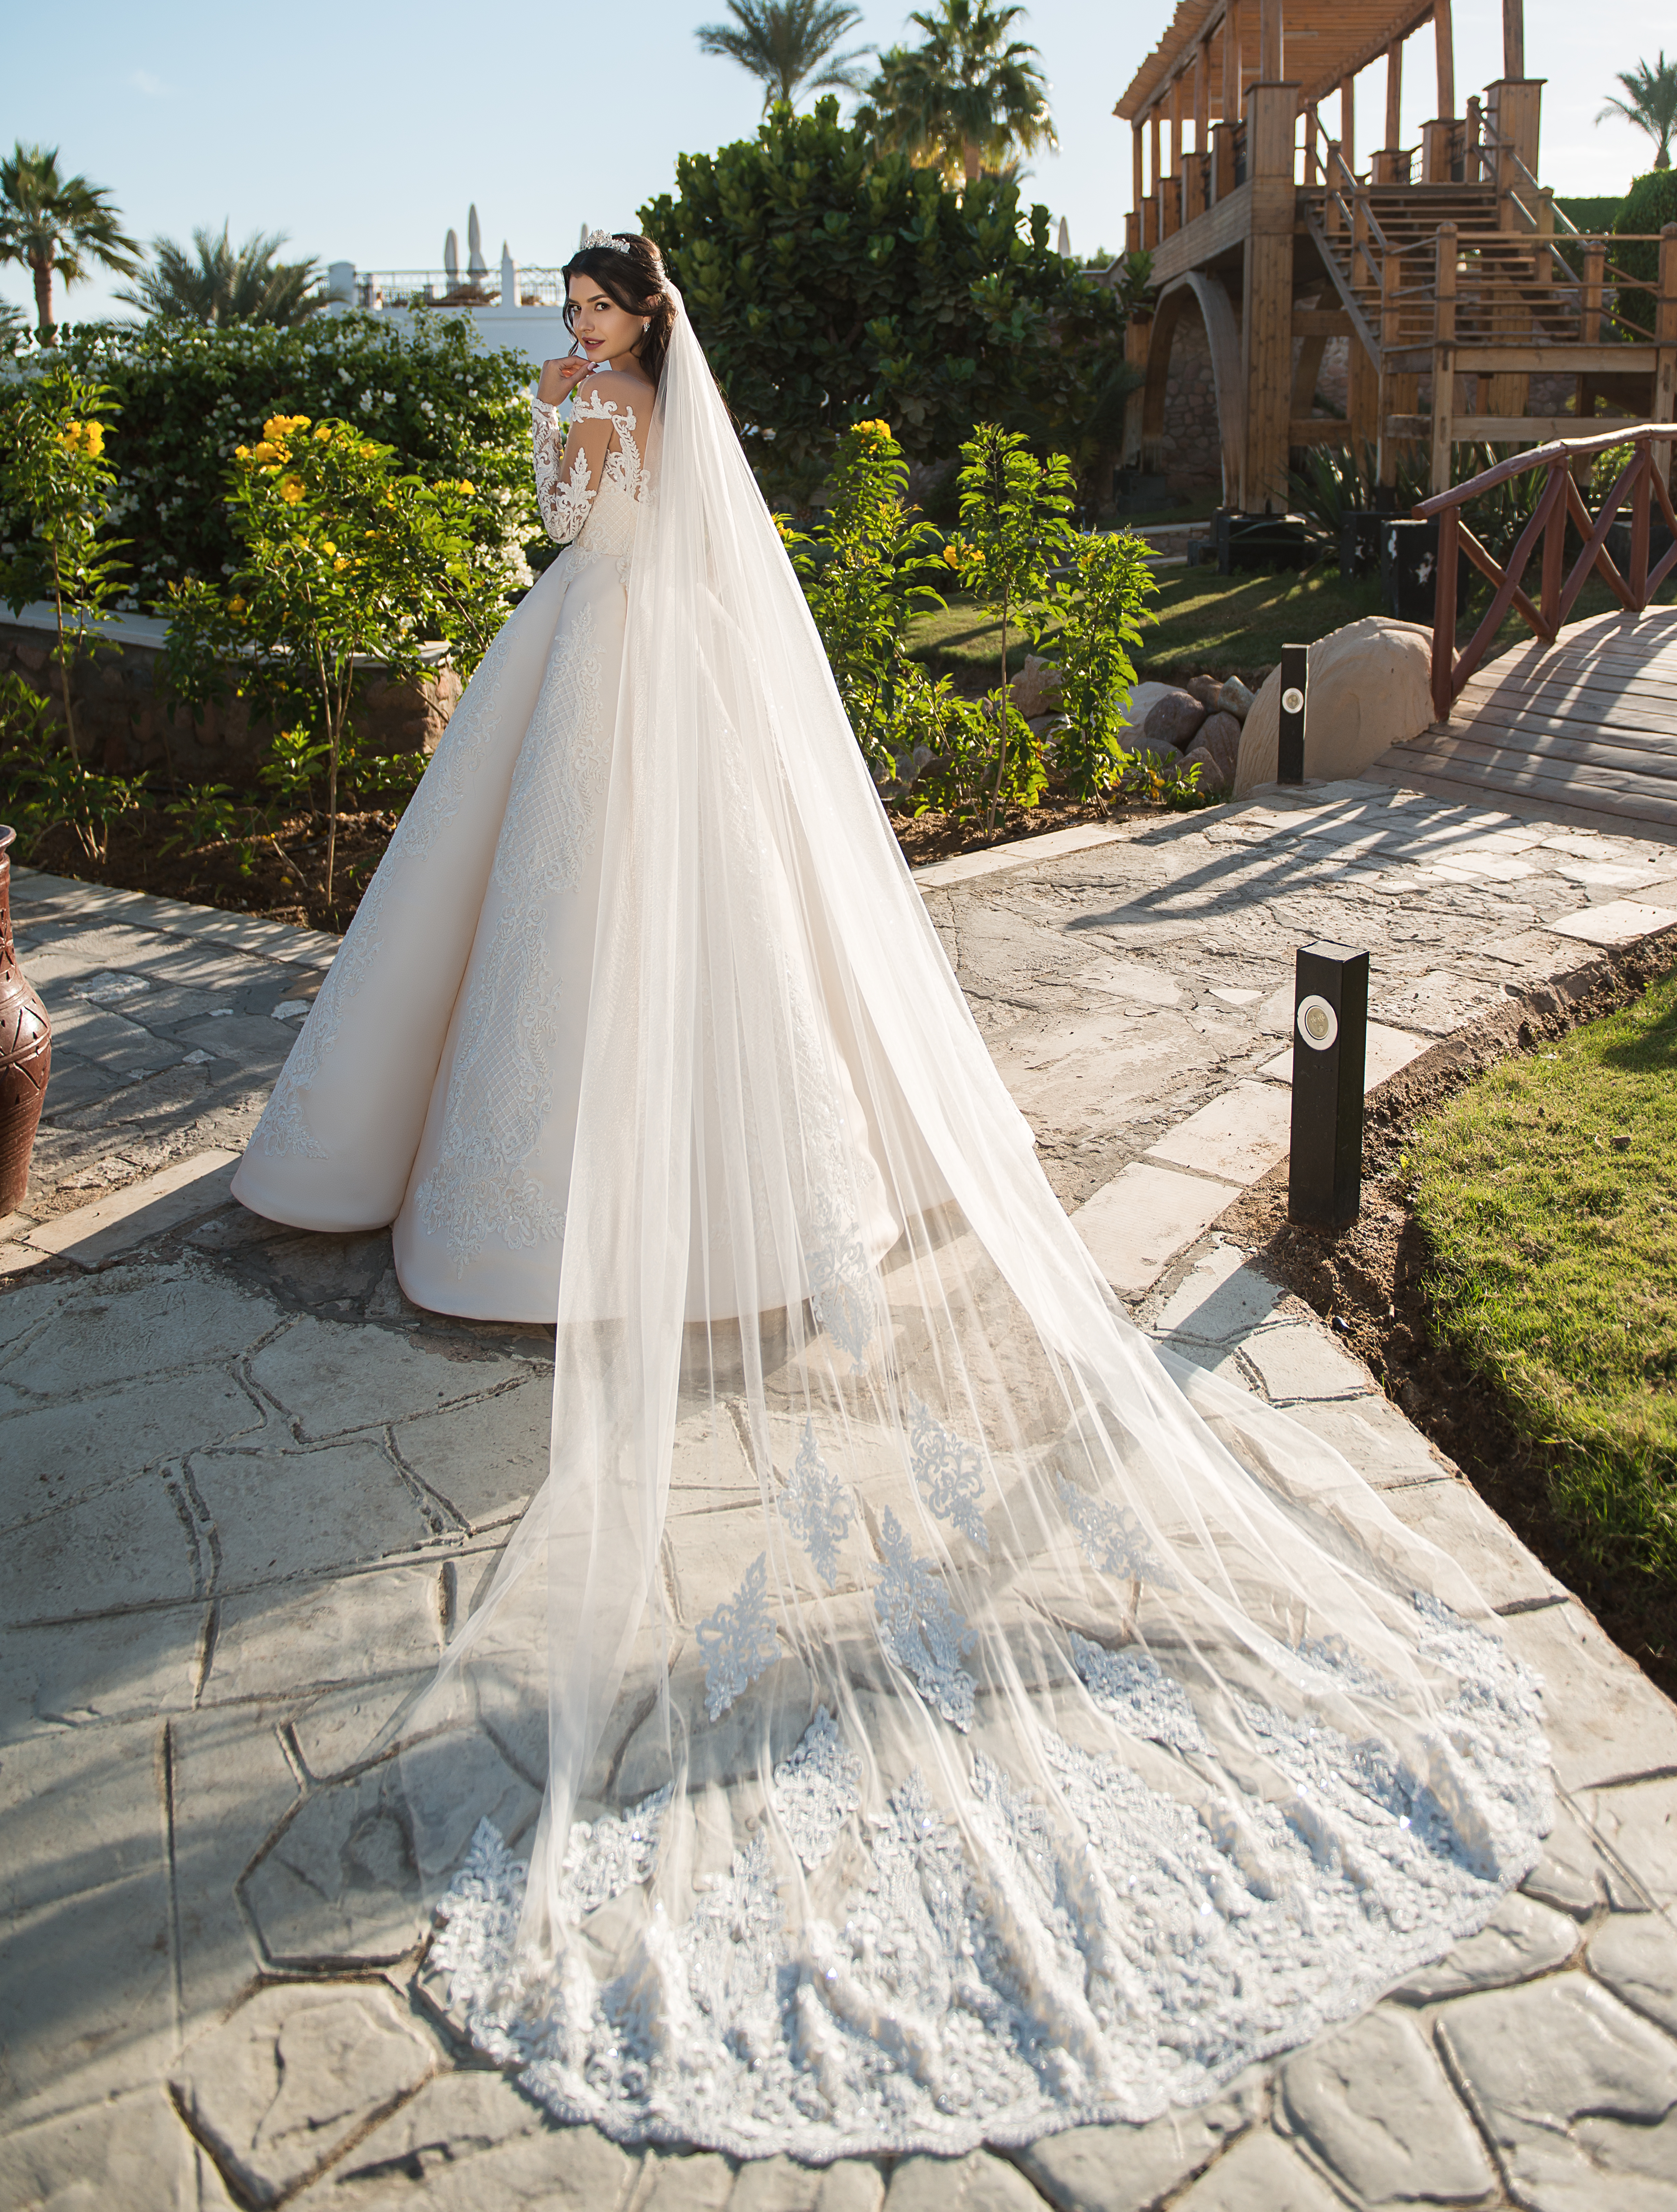 Bum veil made of tulle-1